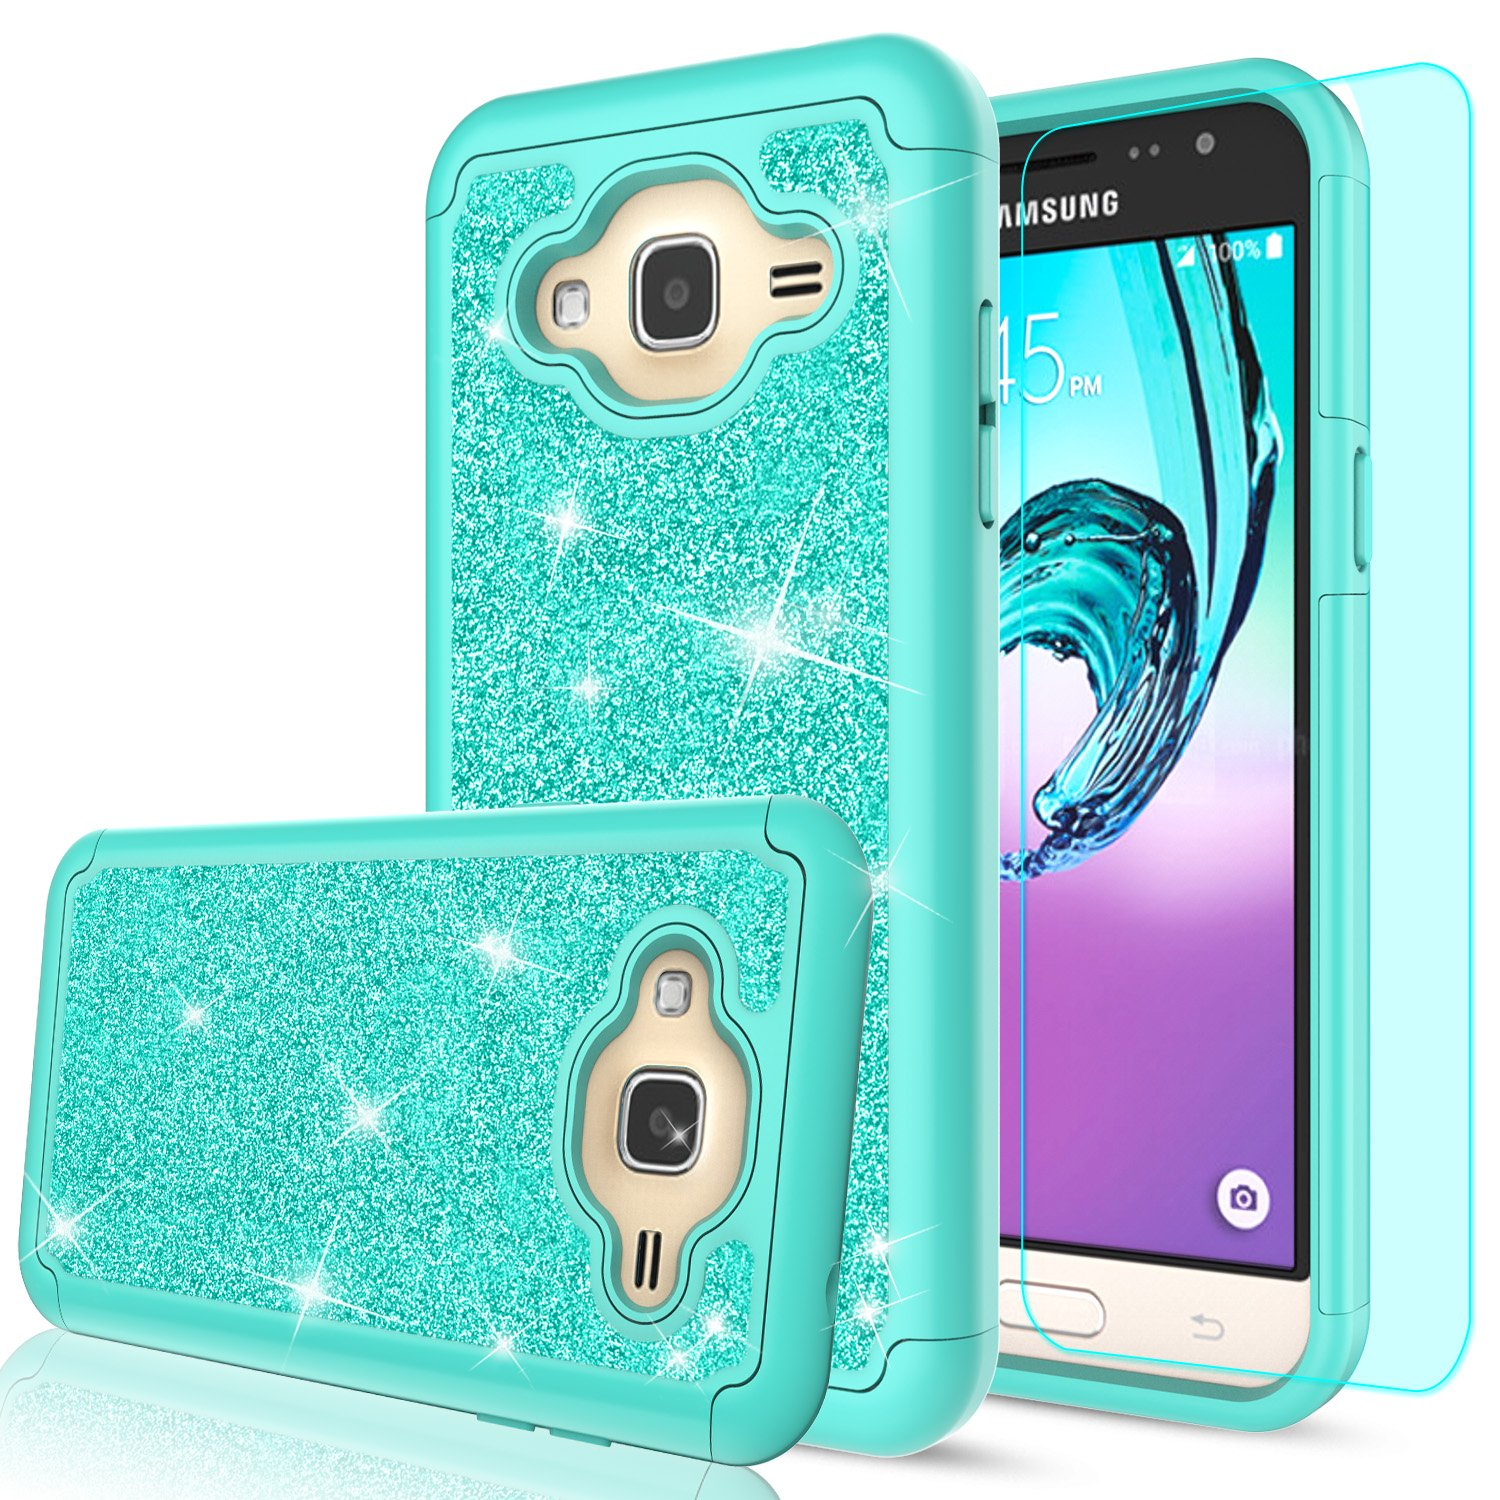 sports shoes ec55e 22454 Galaxy Sky Case,Galaxy J3V / J3 V/Amp Prime / J3 (2016) / Express Prime/Sol  Case with Tempered Glass Screen Protector, LeYi Girls Glitter Bling Heavy  ...